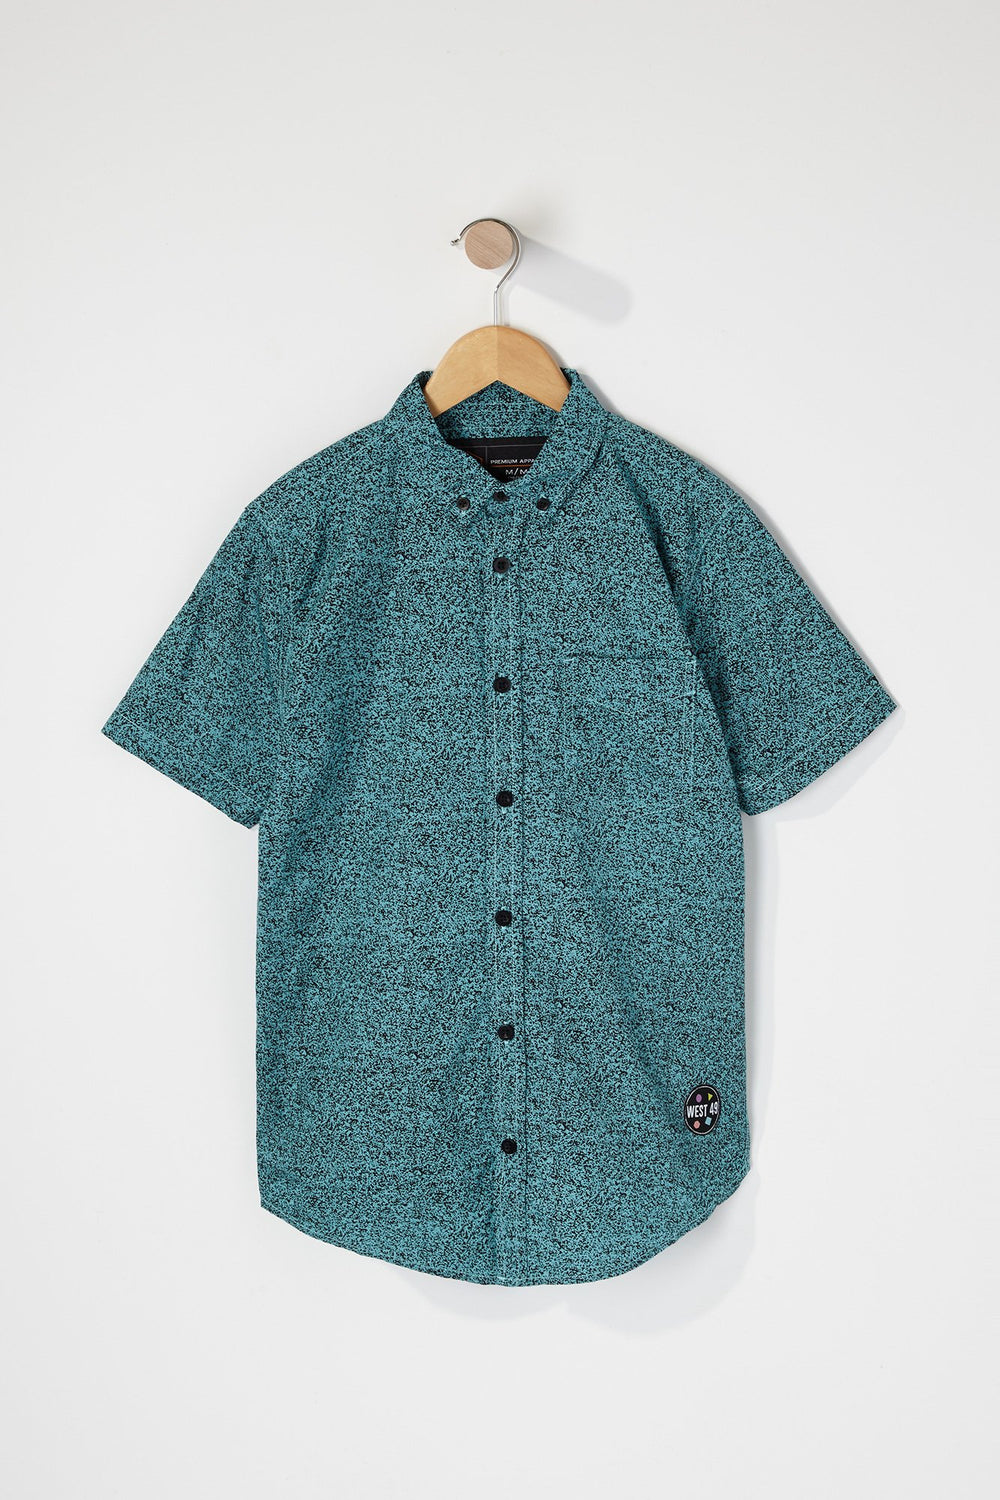 West49 Boys Cotton Speckle Print Button Up Shirt Sage